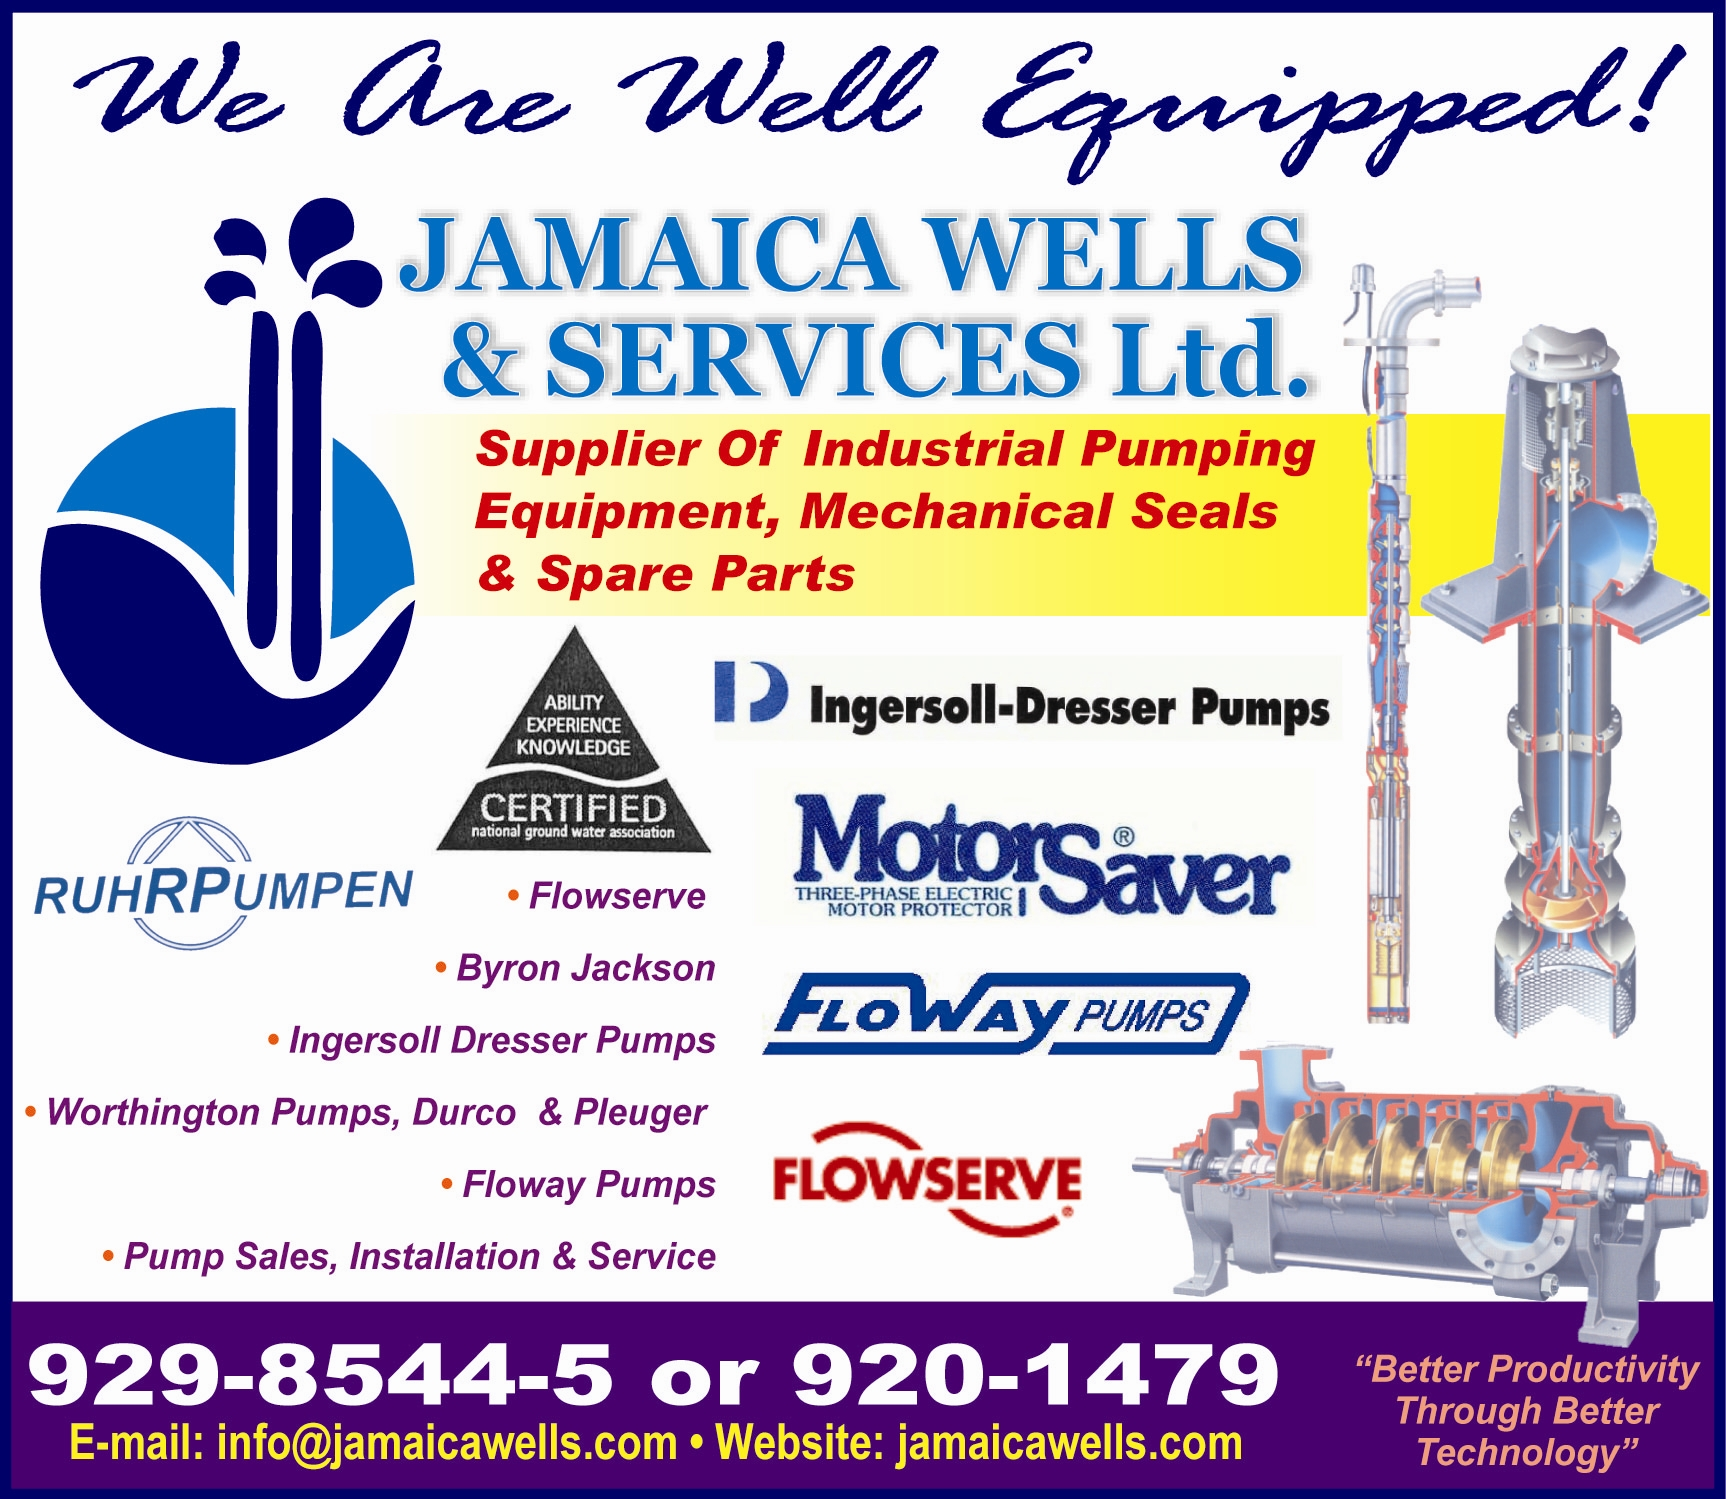 Jamaica Wells & Services Limited